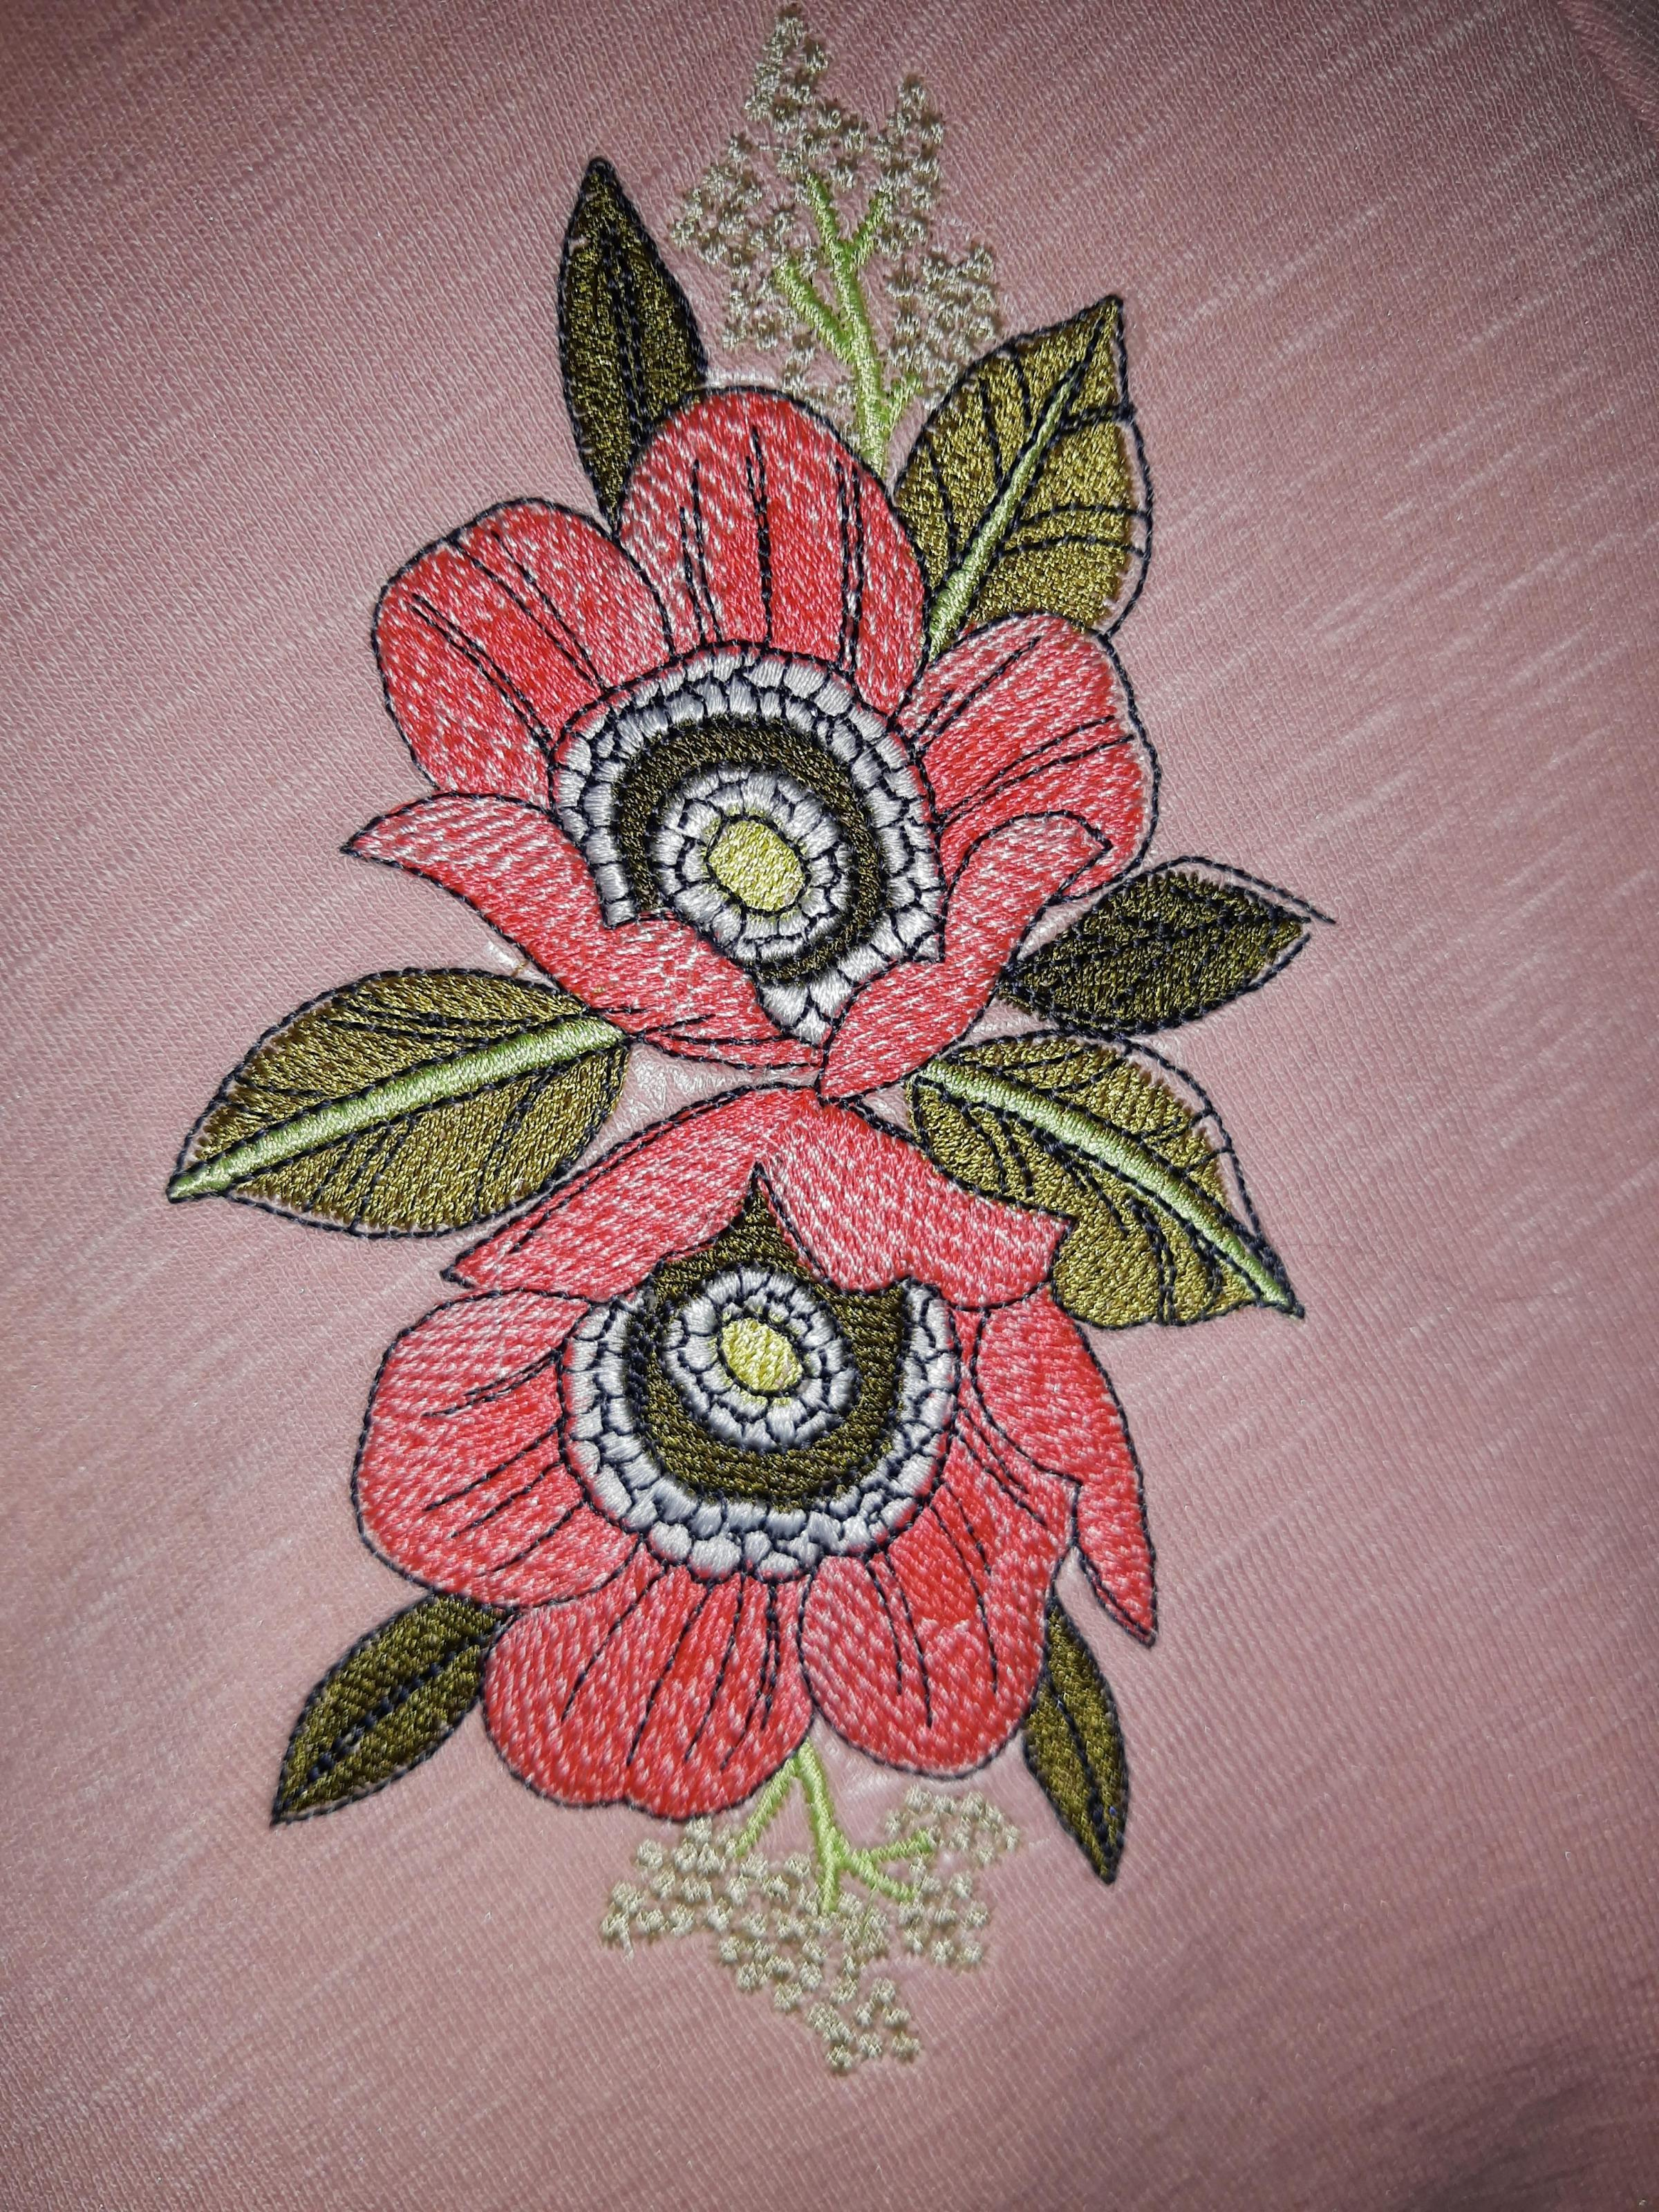 Two dog-rose embroidery design